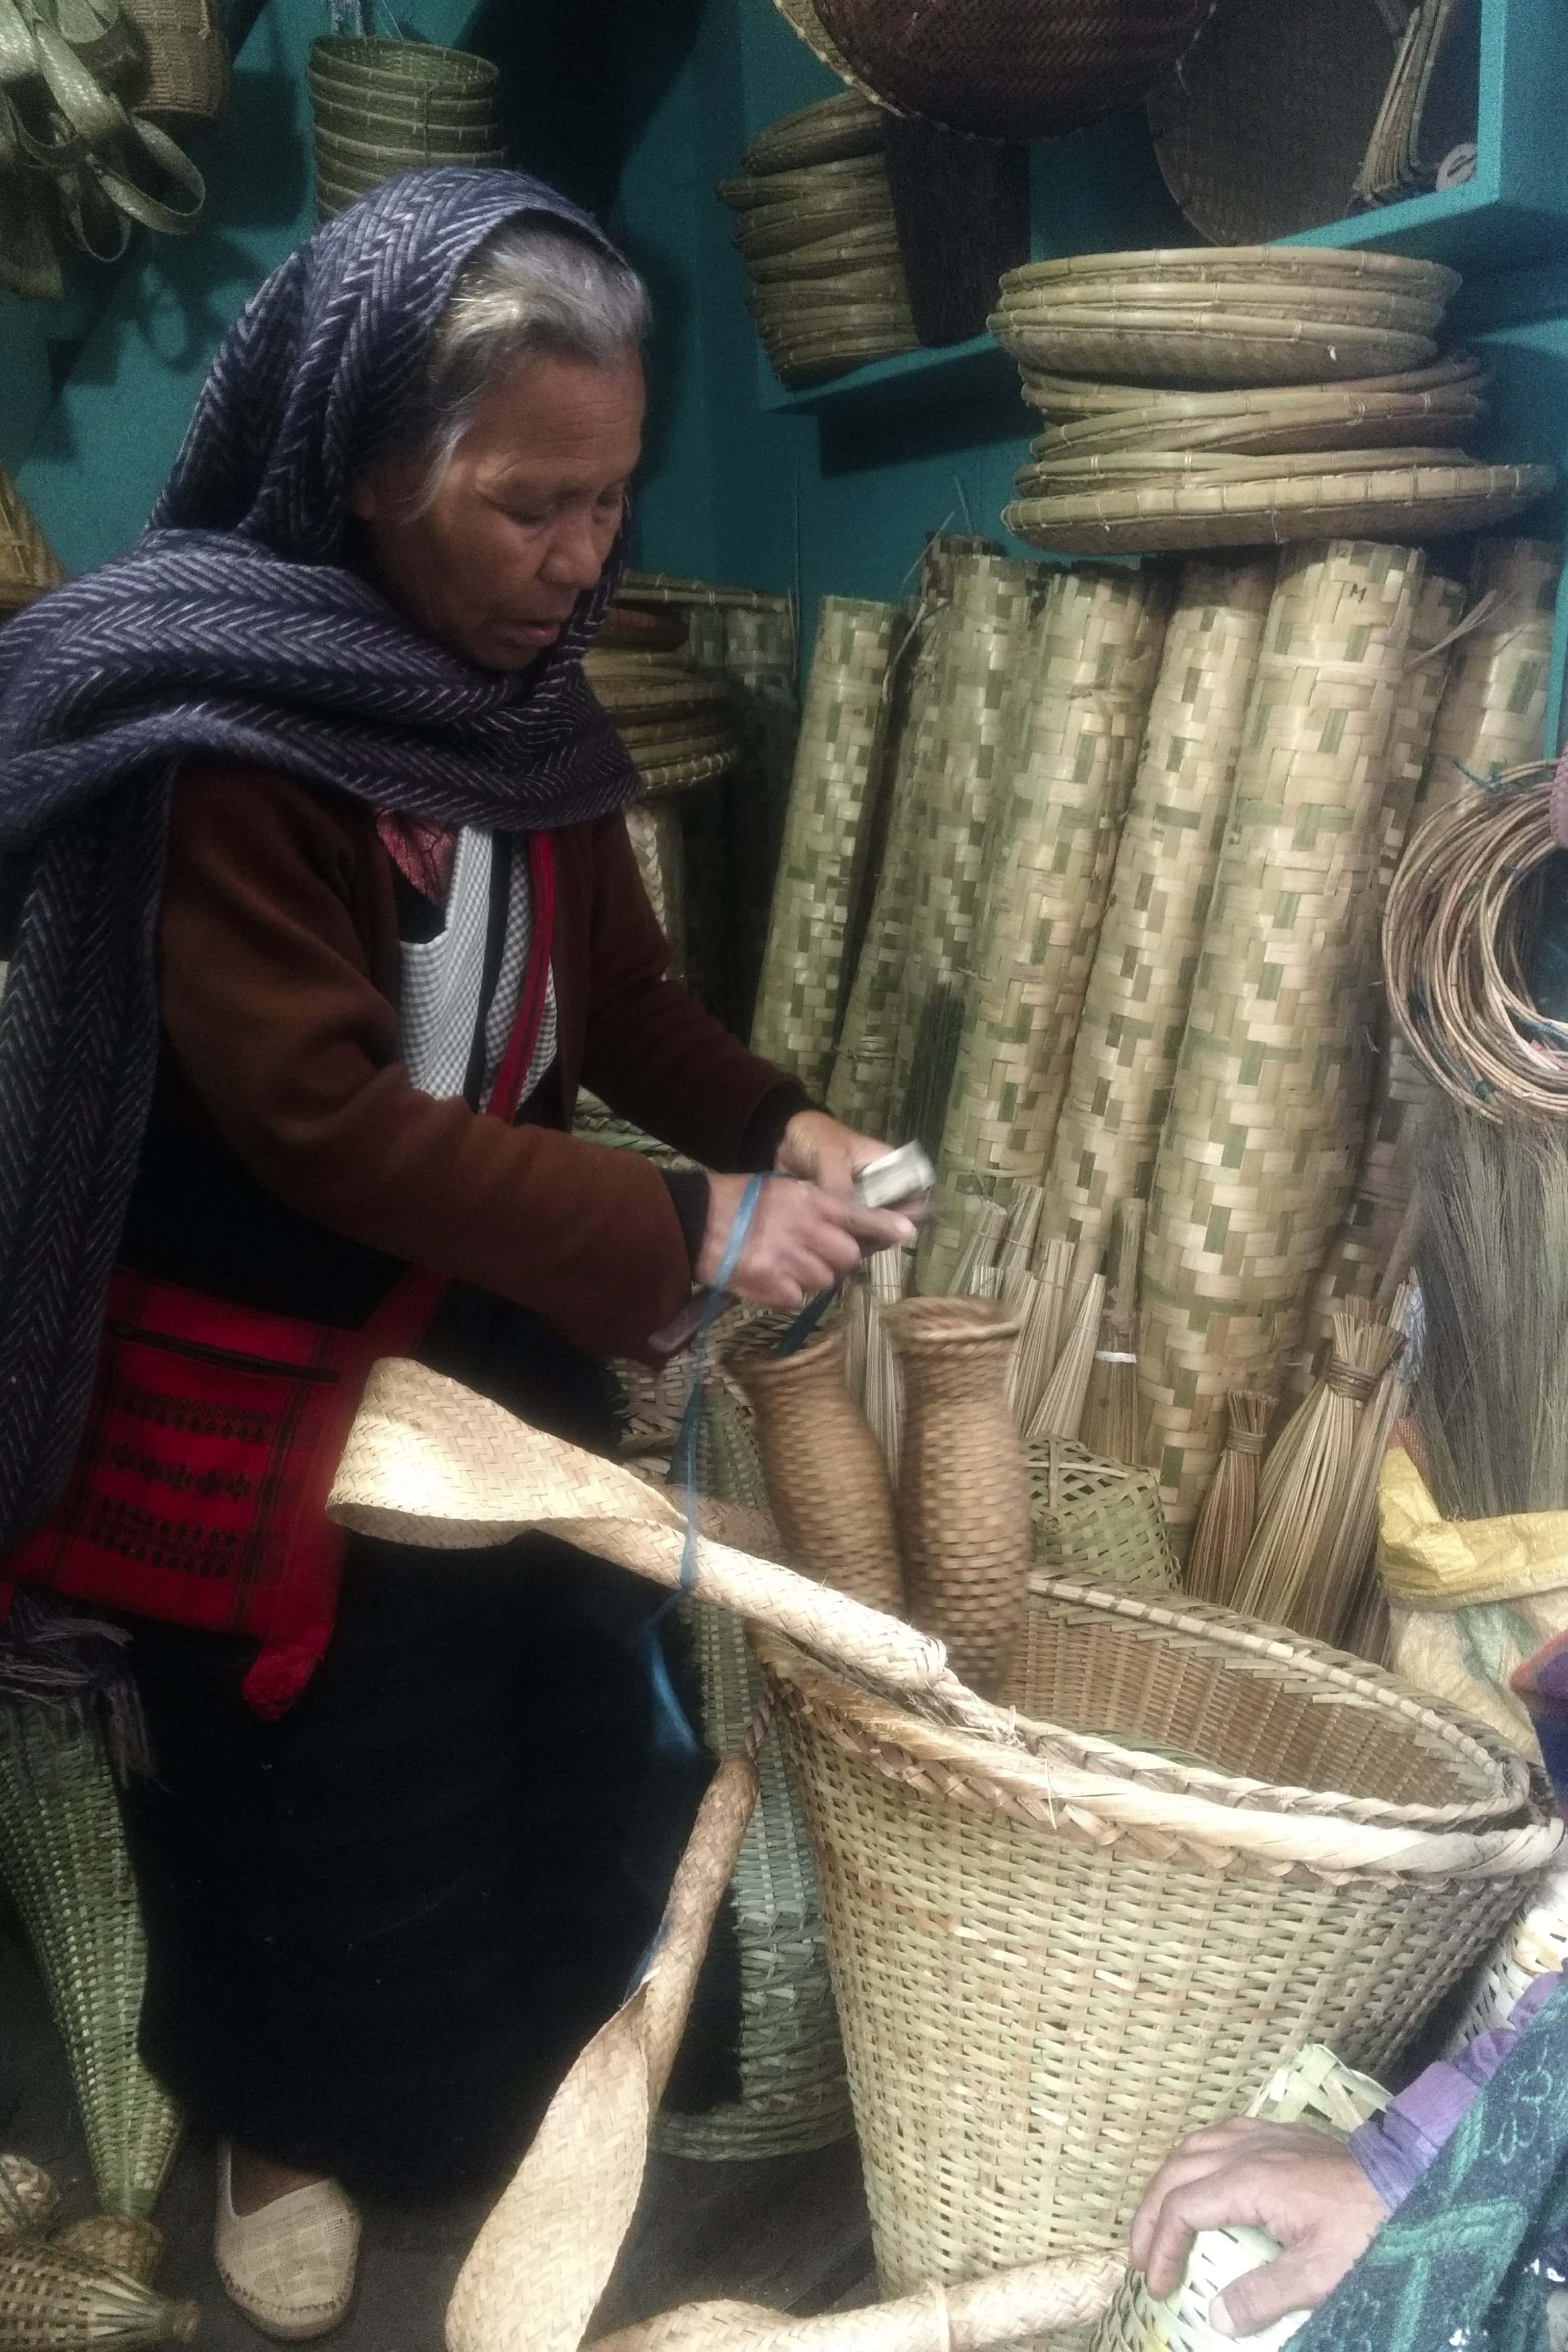 Owner of a basket-making shop in Shillong. (Photograph by Parasher Baruah).